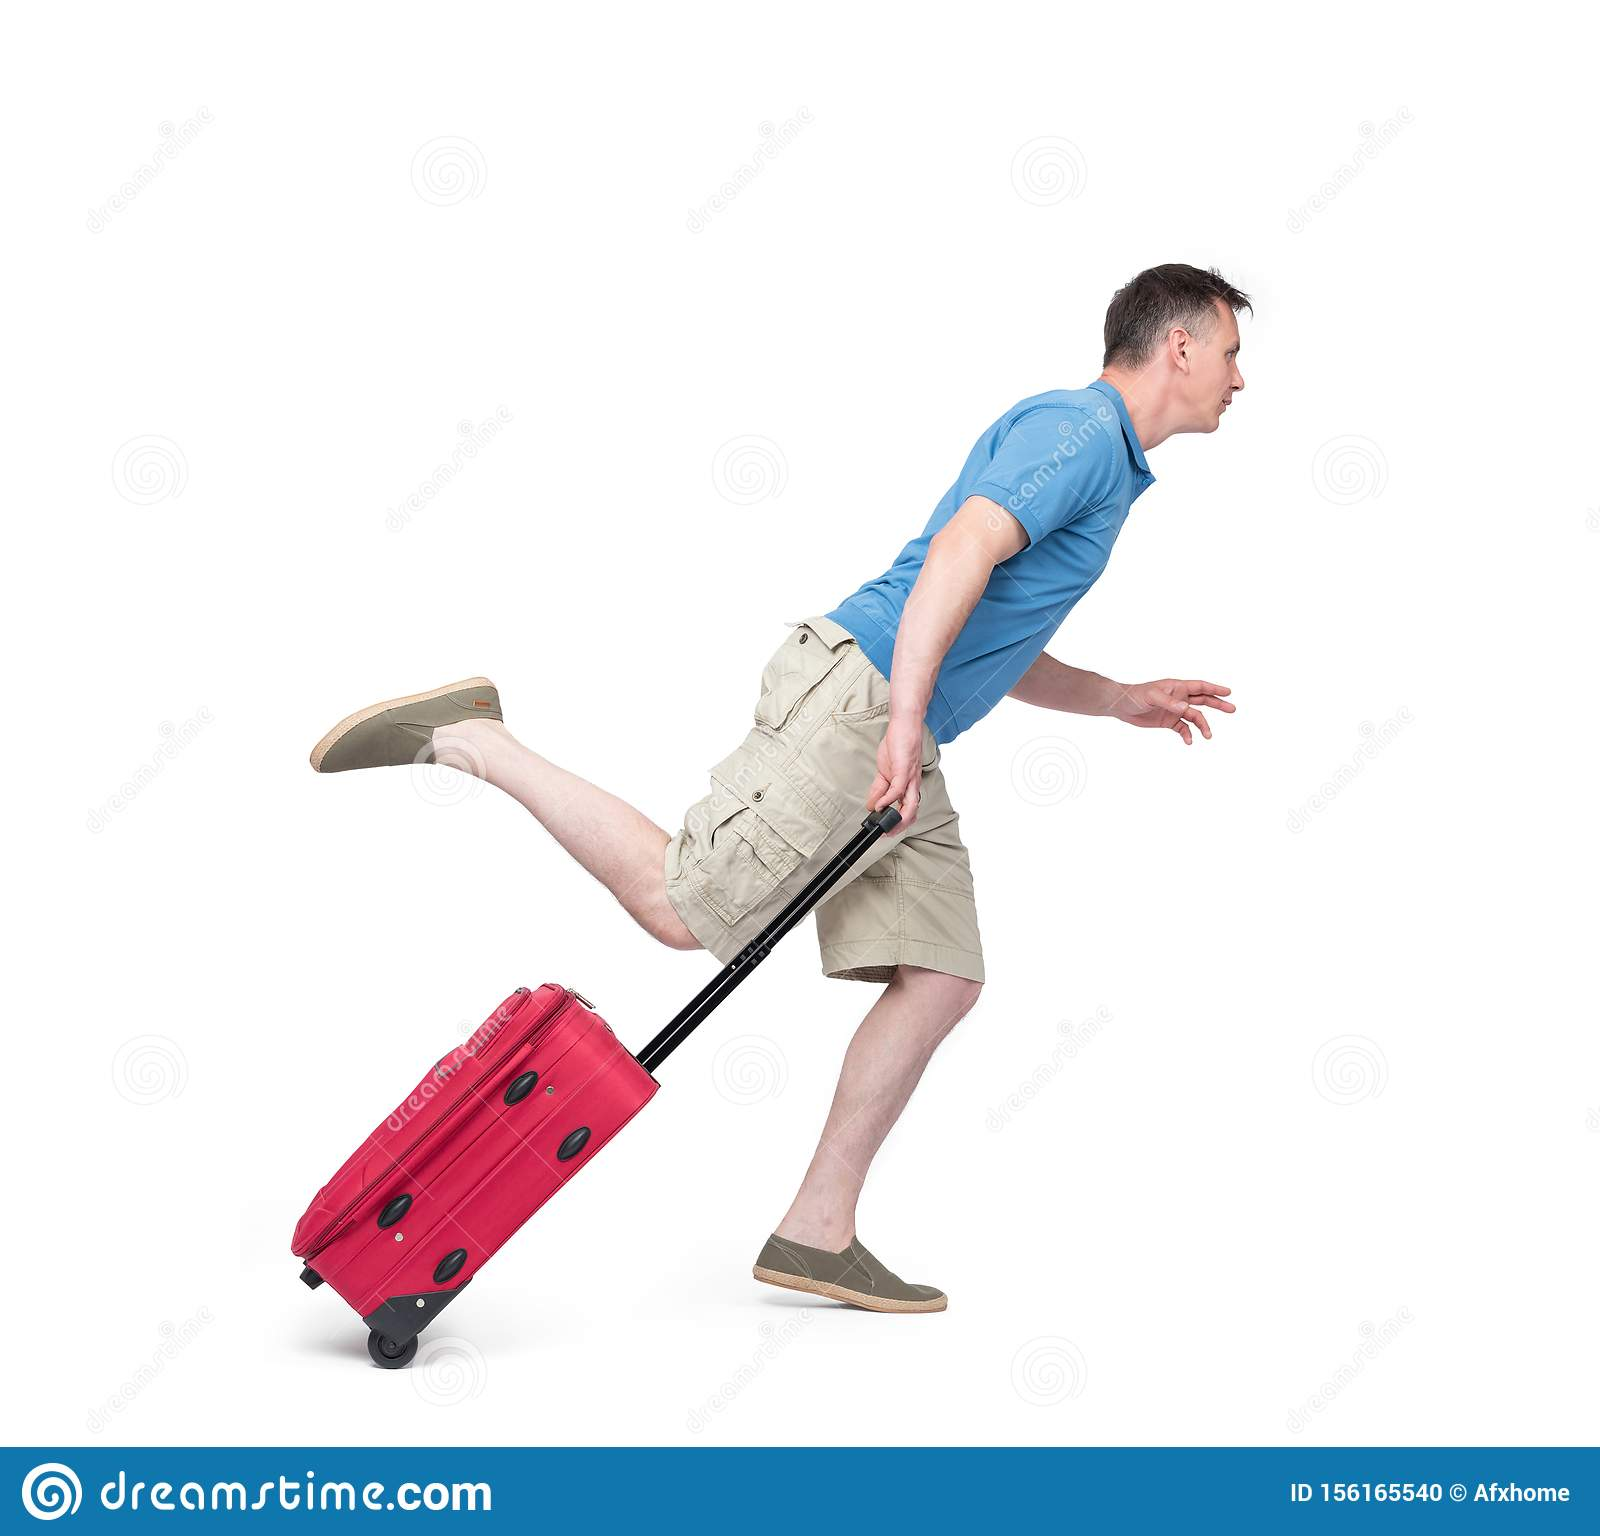 Man in a T-shirt, shorts and with a red suitcase hurries, runs. Isolated on white background. Late passenger concept